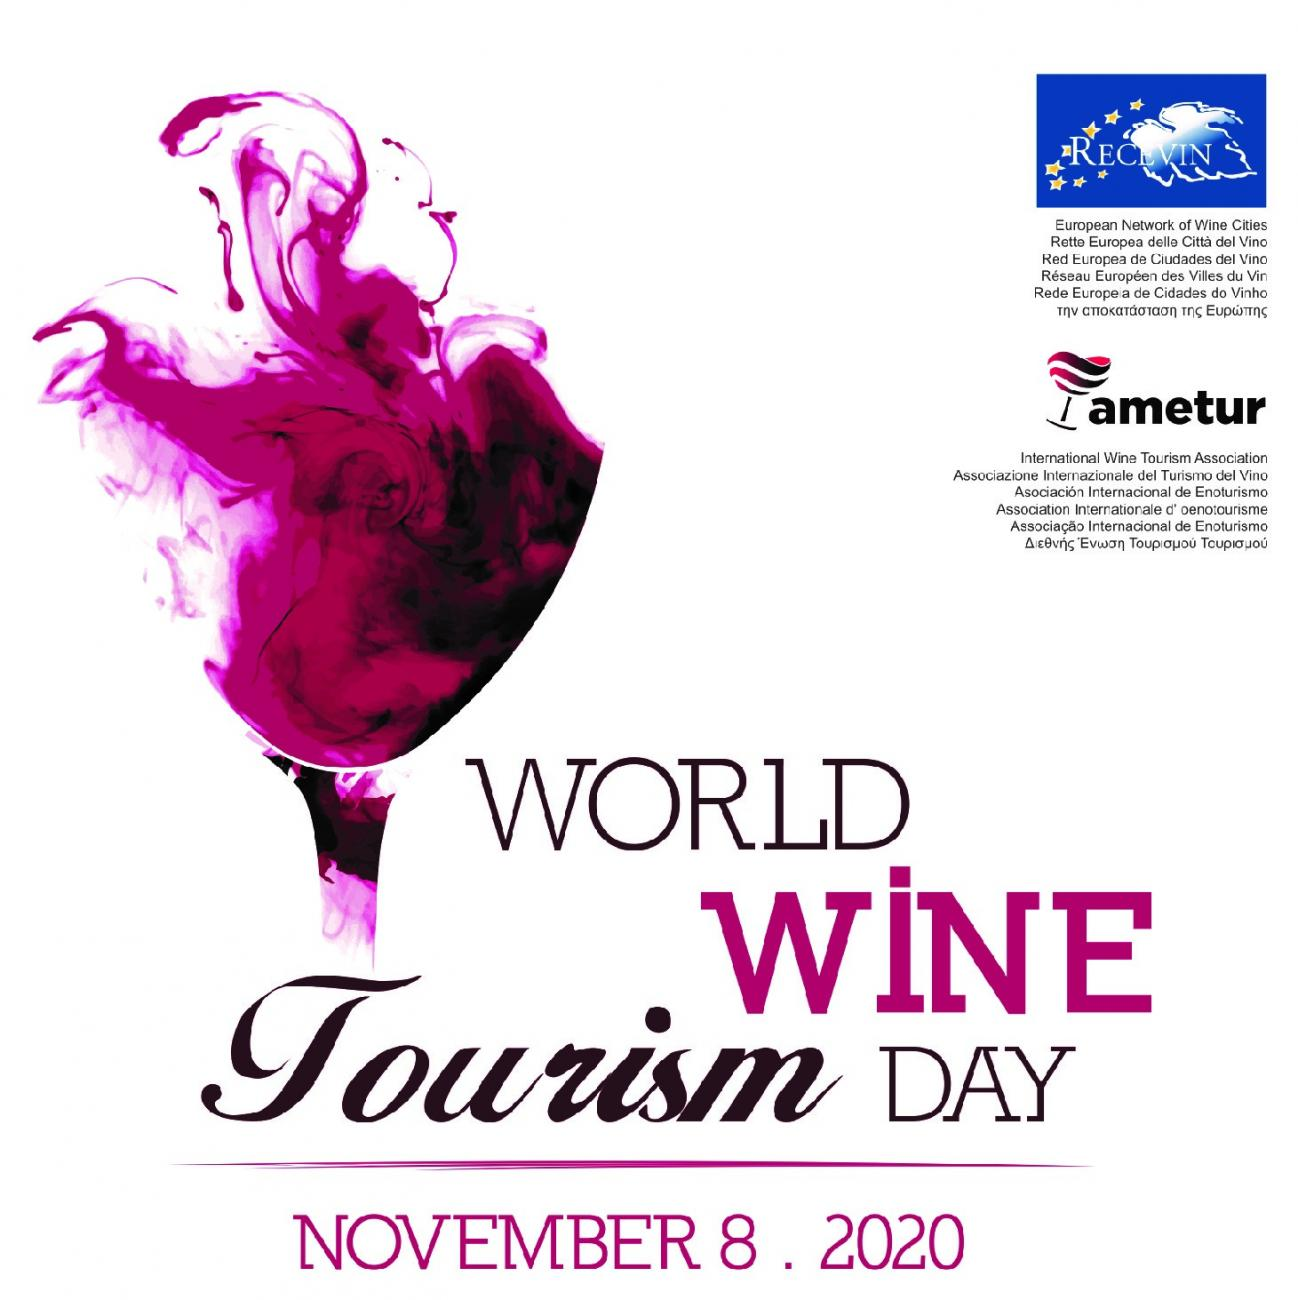 World Wine Tourism Day